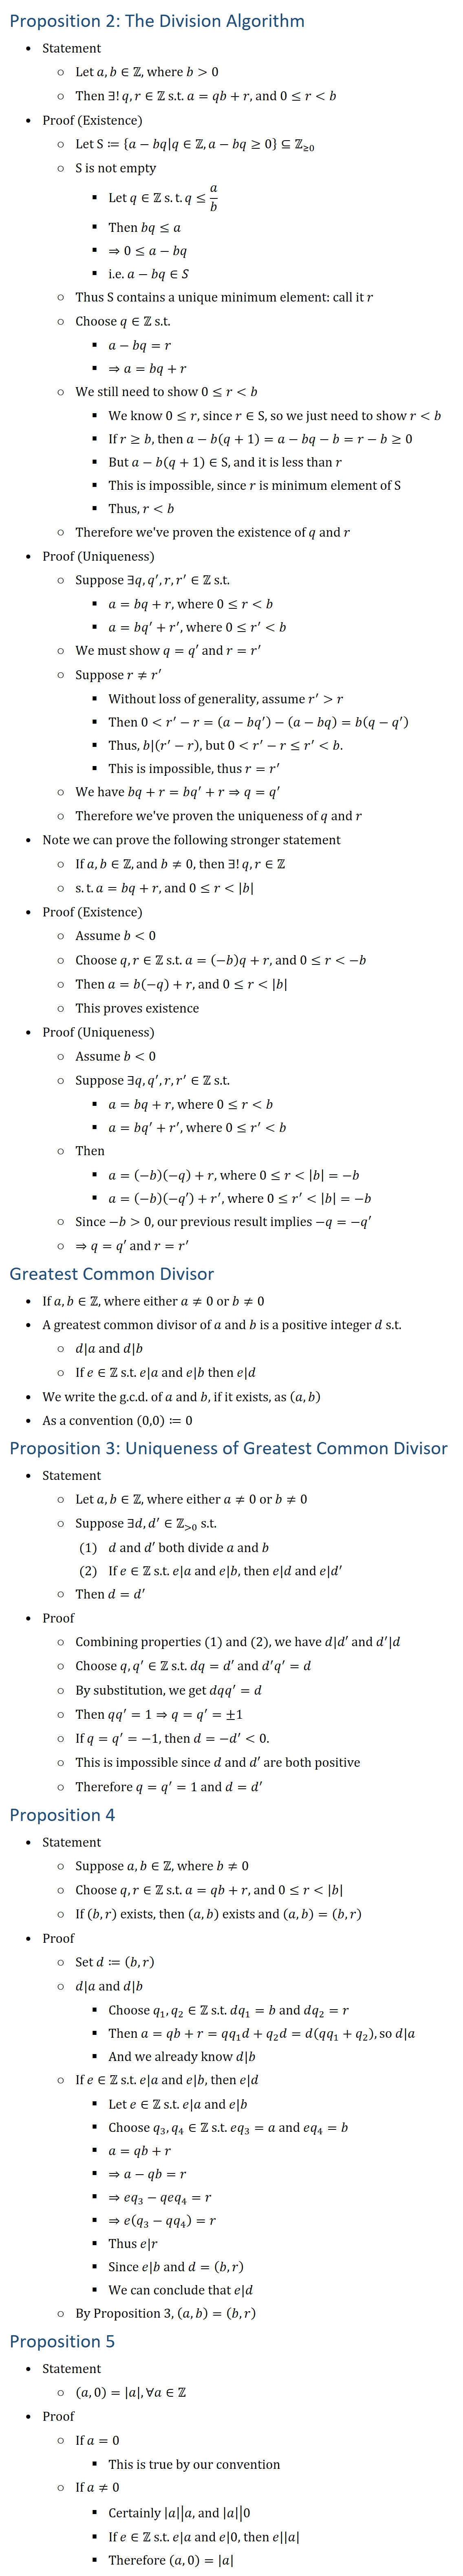 Proposition 2: The Division Algorithm • Statement ○ Let a,b∈Z, where b 0 ○ Then ∃!q,r∈Z s.t. a=qb+r, and 0≤r b • Proof (Existence) ○ Let S≔{a−bq│q∈Za−bq≥0}⊆Z(≥0) ○ S is not empty § Let q∈Z s.t. q≤a/b § Then bq≤a § ⇒0≤a−bq § i.e. a−bq∈S ○ Thus S contains a unique minumum elemtent: call it r ○ Choose q∈Z s.t. § a−bq=r § ⇒a=bq+r ○ We still need to show 0≤r b § We know 0≤r, since r∈S, so we just need to show r b § If r≥b, then a−b(q+1)=a−bq−b=r−b≥0 § But a−b(q+1)∈S, and it is less than r § This is impossible, since r is minimum element of S § Thus, r b ○ Therefore we ve proven the existence of q and r • Proof (Uniqueness) ○ Suppose ∃q,q^′,r,r^′∈Z s.t. § a=bq+r, where 0≤r b § a=bq^′+r^′, where 0≤r^′ b ○ We must show q=q′ and r=r^′ ○ Suppose r≠r^′ § Without loss of generality, assume r^′ r § Then 0 r^′−r=(a−bq^′ )−(a−bq)=b(q−q^′ ) § Thus, ├ b┤|├ (r^′−r)┤, but 0 r^′−r≤r^′ b. § This is impossible, thus r=r^′ ○ We have bq+r=bq^′+r⇒q=q^′ ○ Therefore we ve proven the uniqueness of q and r • Note we can prove the following stronger statement ○ If a,b∈Z, and b≠0, then ∃!q,r∈Z ○ s.t. a=bq+r, and 0≤r |b| • Proof (Existence) ○ Assume b 0 ○ Choose q,r∈Z s.t. a=(−b)q+r, and 0≤r −b ○ Then a=b(−q)+r, and 0≤r |b| ○ This proves existence • Proof (Uniqueness) ○ Assume b 0 ○ Suppose ∃q,q^′,r,r^′∈Z s.t. § a=bq+r, where 0≤r b § a=bq^′+r^′, where 0≤r^′ b ○ Then § a=(−b)(−q)+r, where 0≤r |b|=−b § a=(−b)(−q′)+r^′, where 0≤r^′ |b|=−b ○ Since −b 0, our previous result implies −q=−q^′ ○ ⇒q=q′ and r=r^′ Greatest Common Divisor • If a,b∈Z, where either a≠0 or b≠0 • A greatest common divisor of a and b is a positive integer d s.t. ○ d|a and d|b ○ If e∈Z s.t. e|a and e|b then e|d • We write the g.c.d. of a and b, if it exists, as (a,b) • As a convention (0,0)≔0 Proposition 3: Uniqueness of Greatest Common Divisor • Statement ○ Let a,b∈Z, where either a≠0 or b≠0 ○ Suppose ∃d,d^′∈Z( 0) s.t. (1) d and d′ both divide a and b (2) If e∈Z s.t. e|a and e|b, then e|d and e|d^′ ○ Then d=d^′ • Proof ○ Combining 